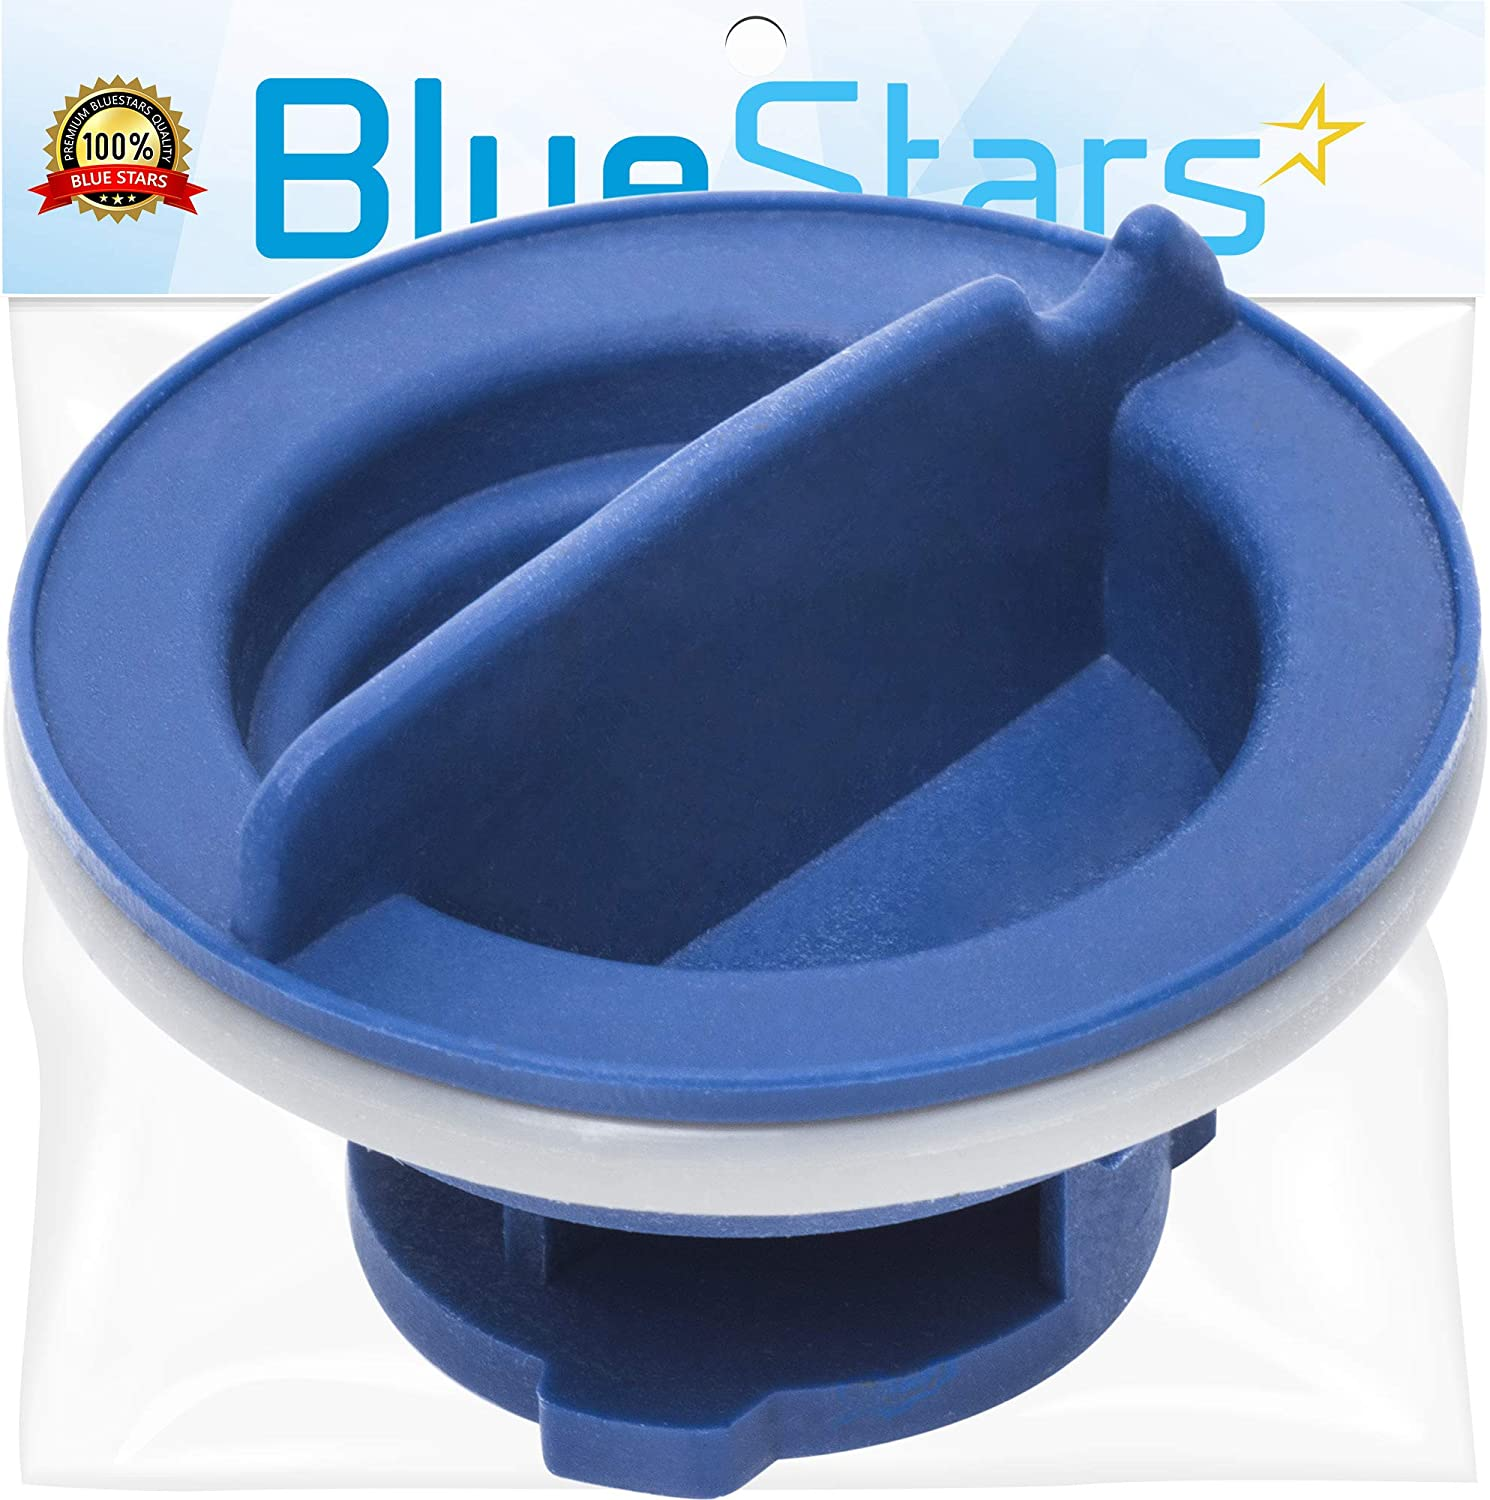 Ultra Durable WPW10077881 Dishwasher Rinse Aid Cap Replacement Part by Blue Stars - Exact Fit for Whirlpool & KitchenAid Dishwashers - Replaces W10077881 PS11748135